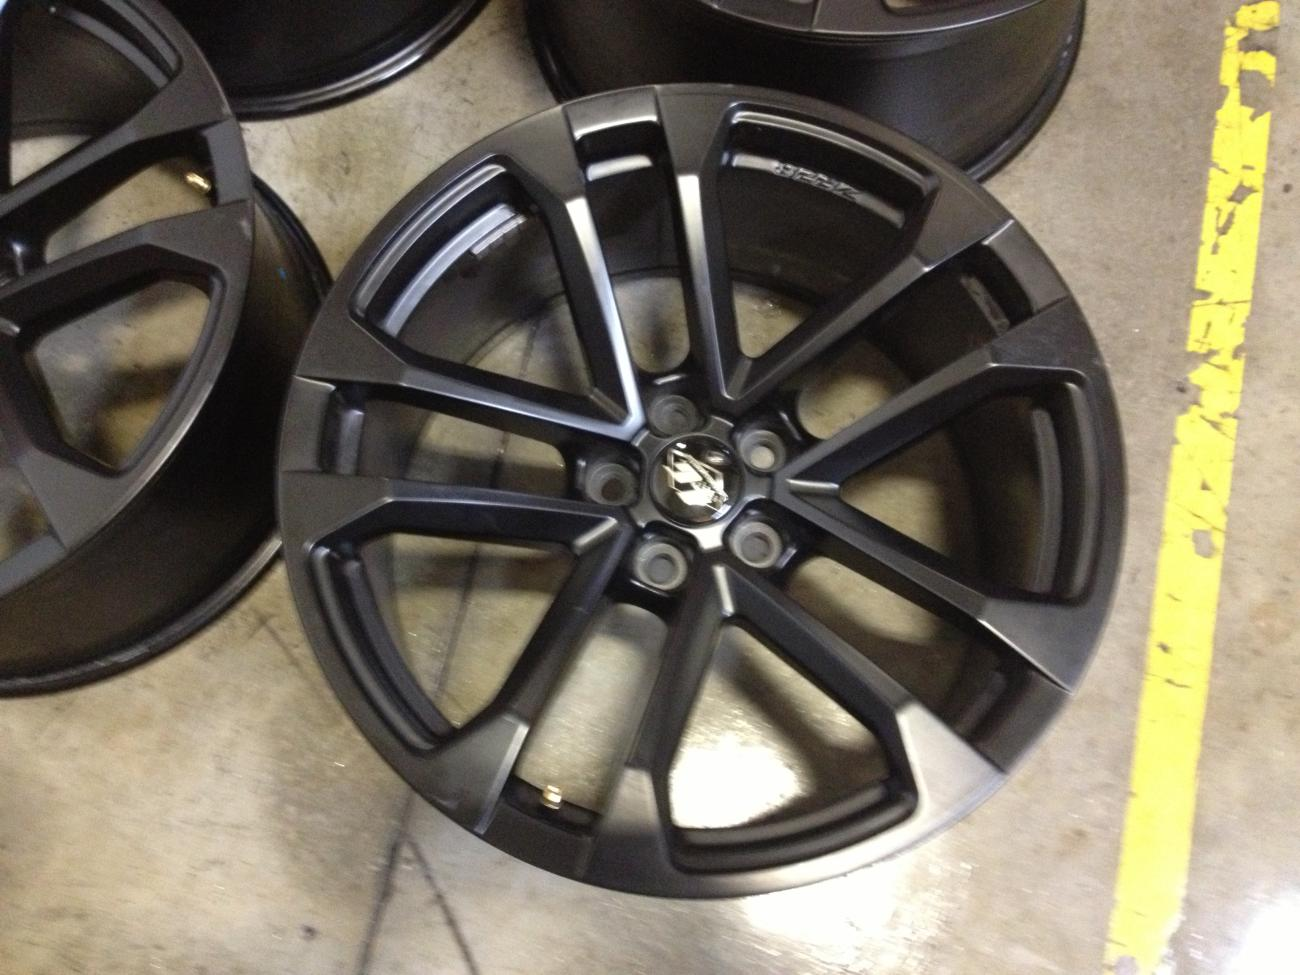 Oem Zl1 Wheels For Sale Html Autos Post